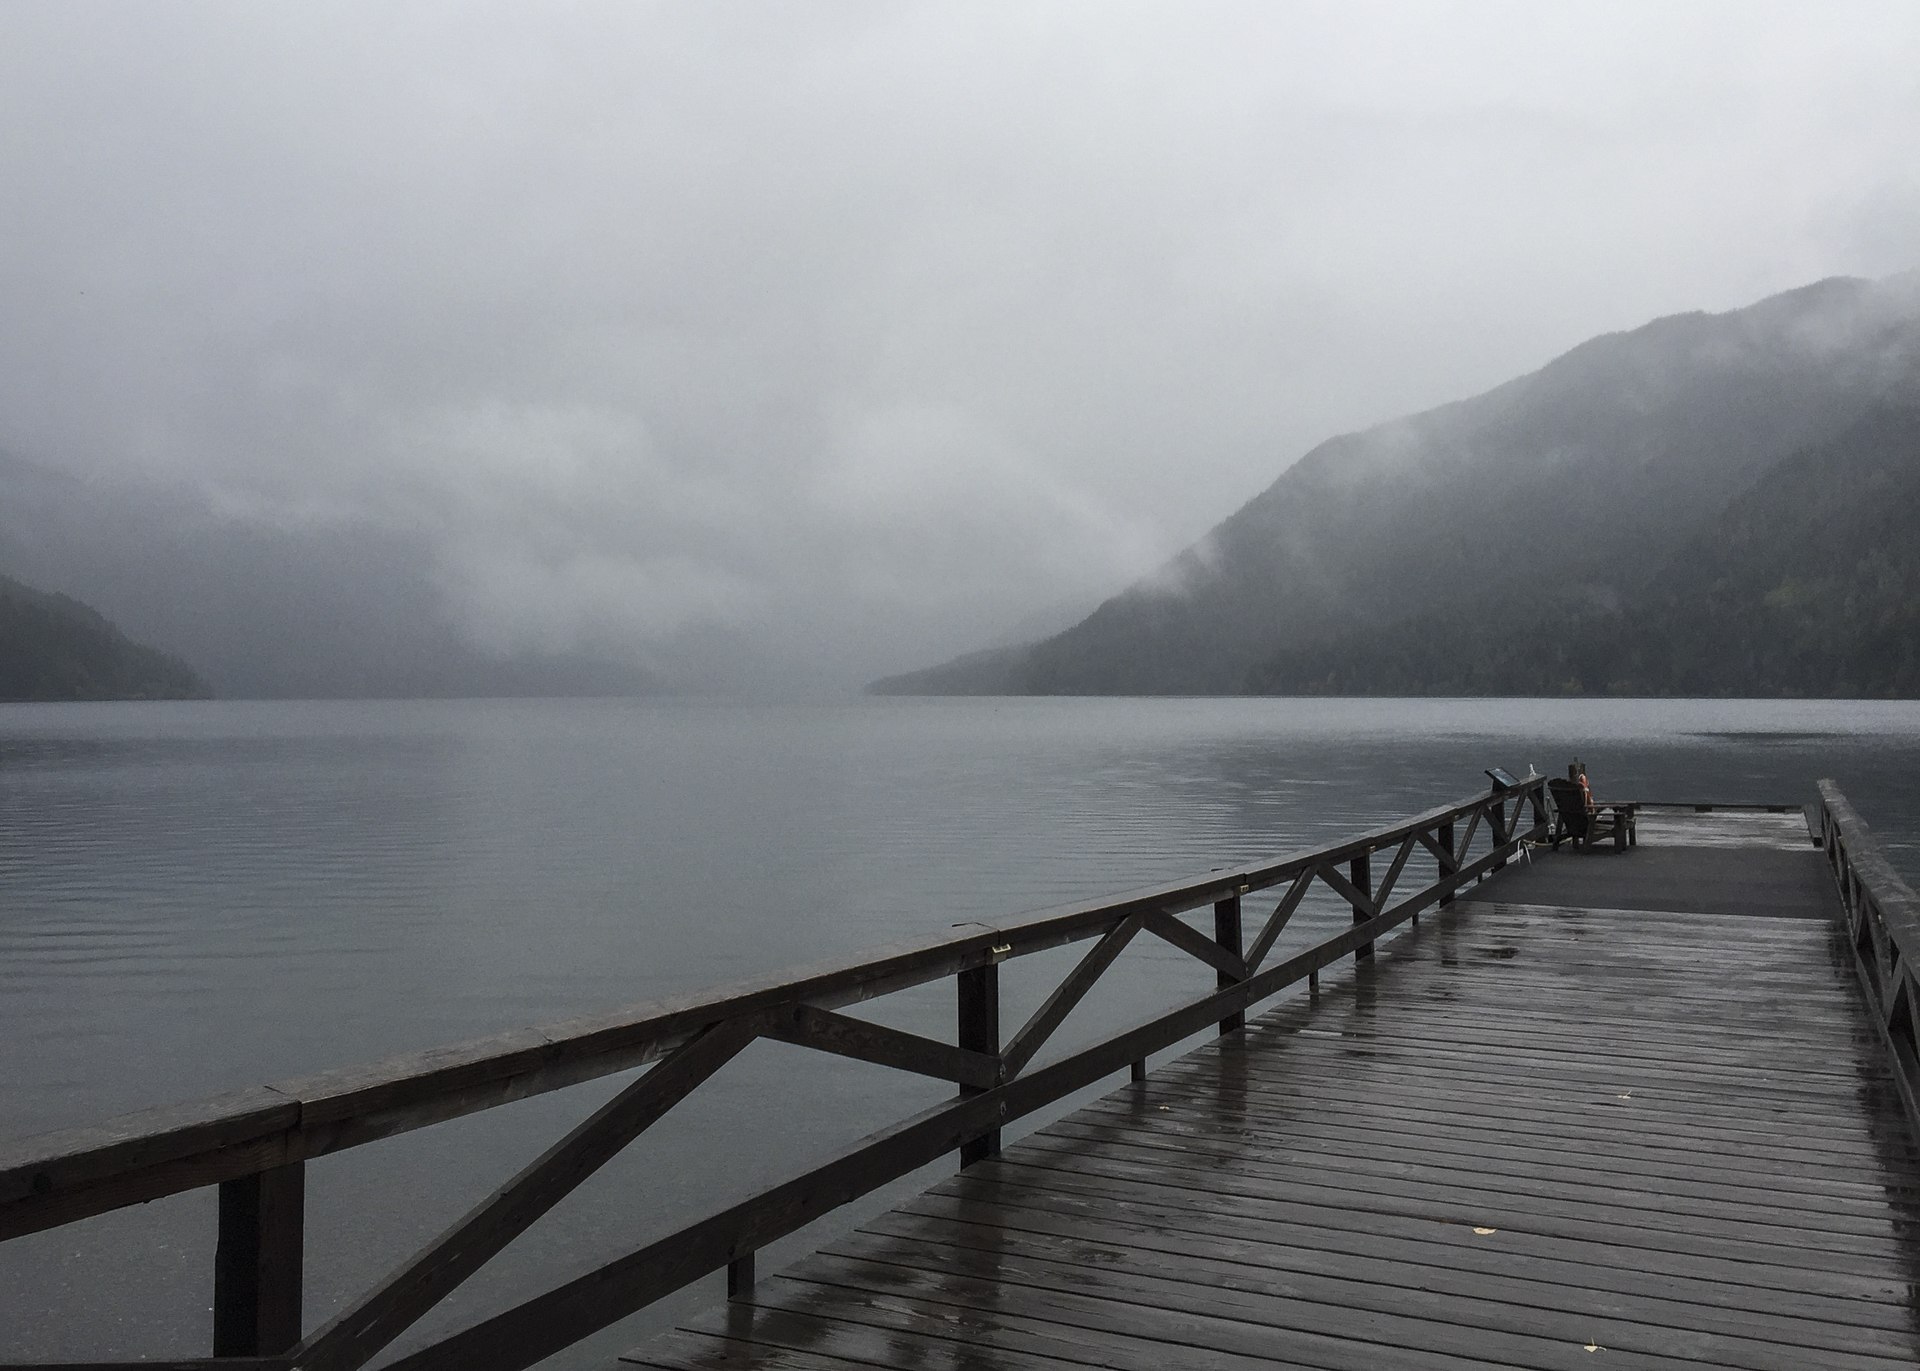 View out over the lake from the dock at Lake Crescent Lodge, on our very grey and rainy Saturday morning.